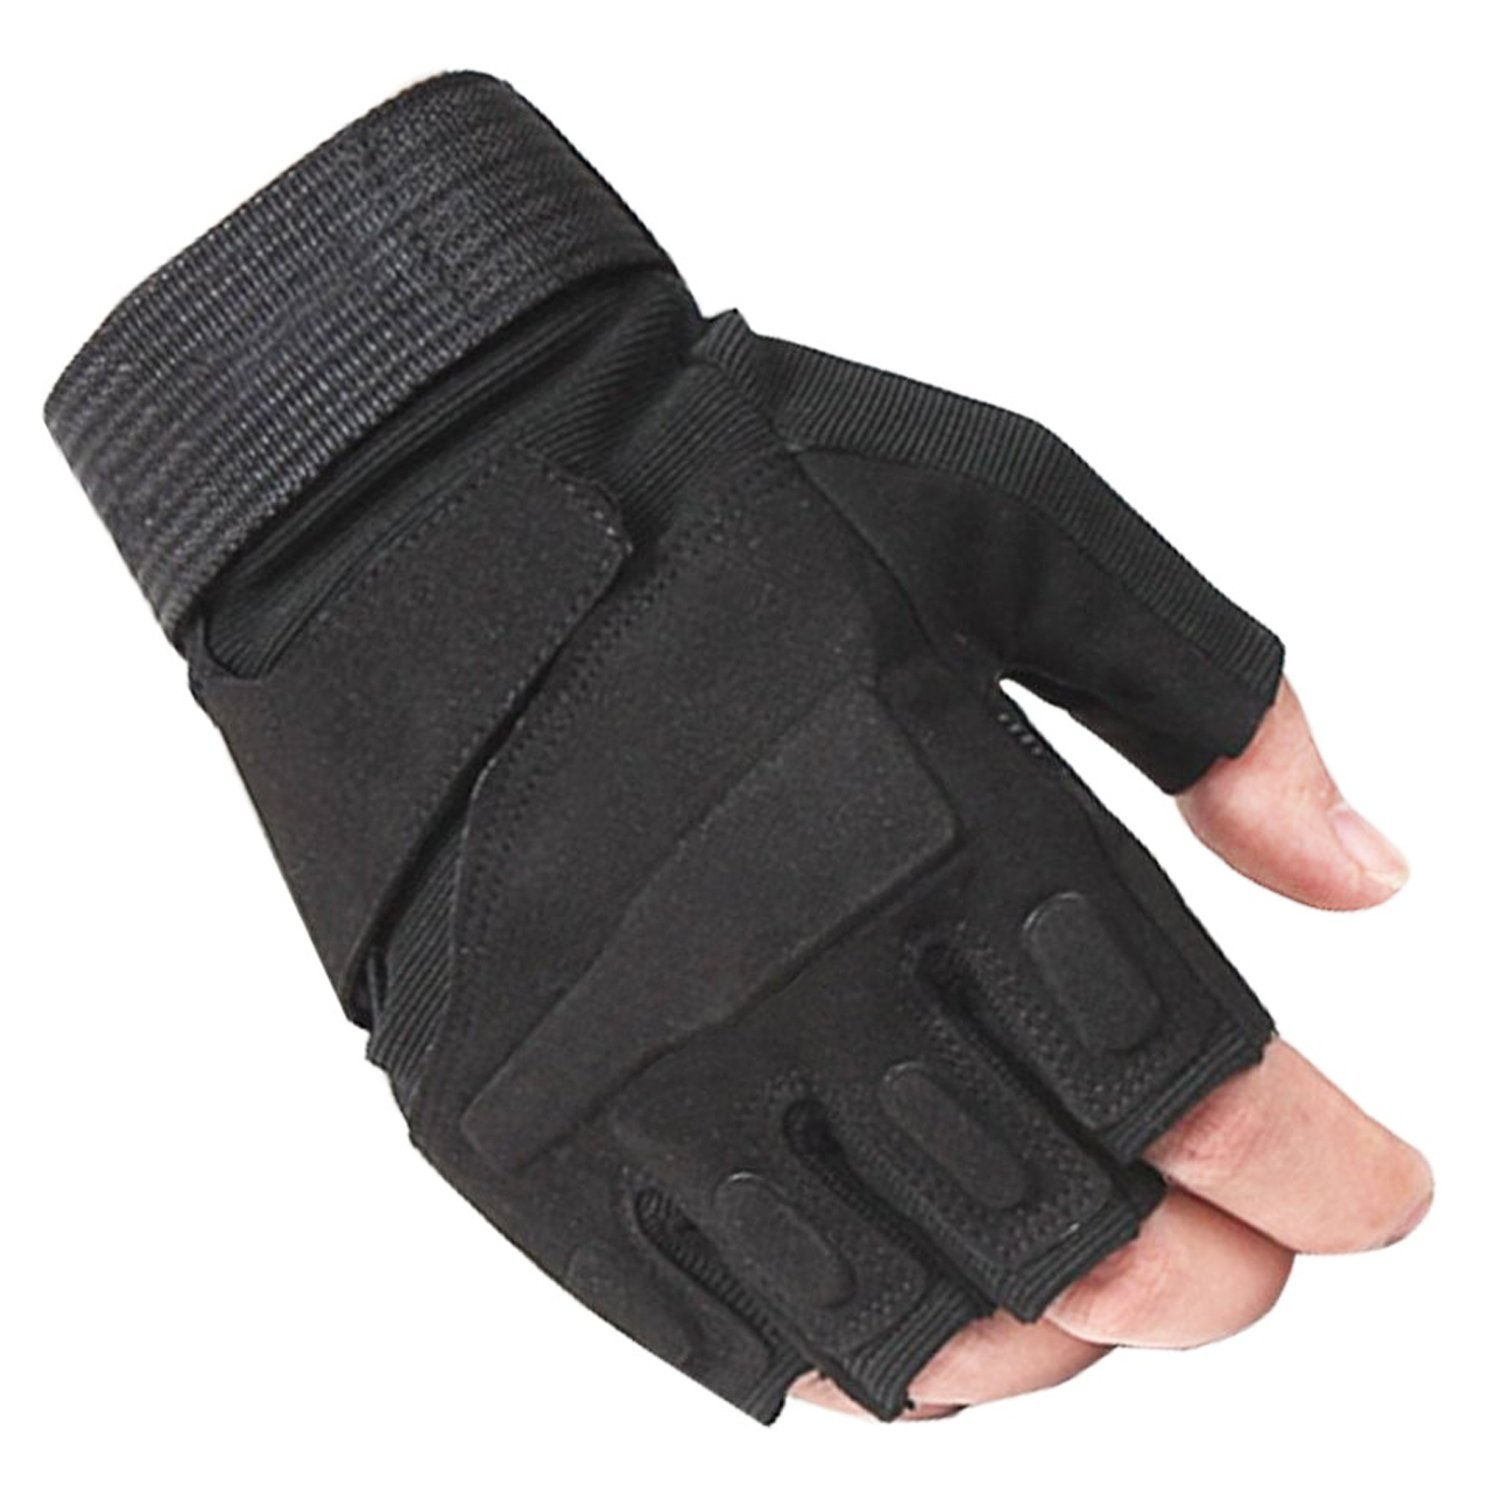 Hot Outdoor Half Finger Gloves Military Tactical Airsoft Hunting Riding Cycling